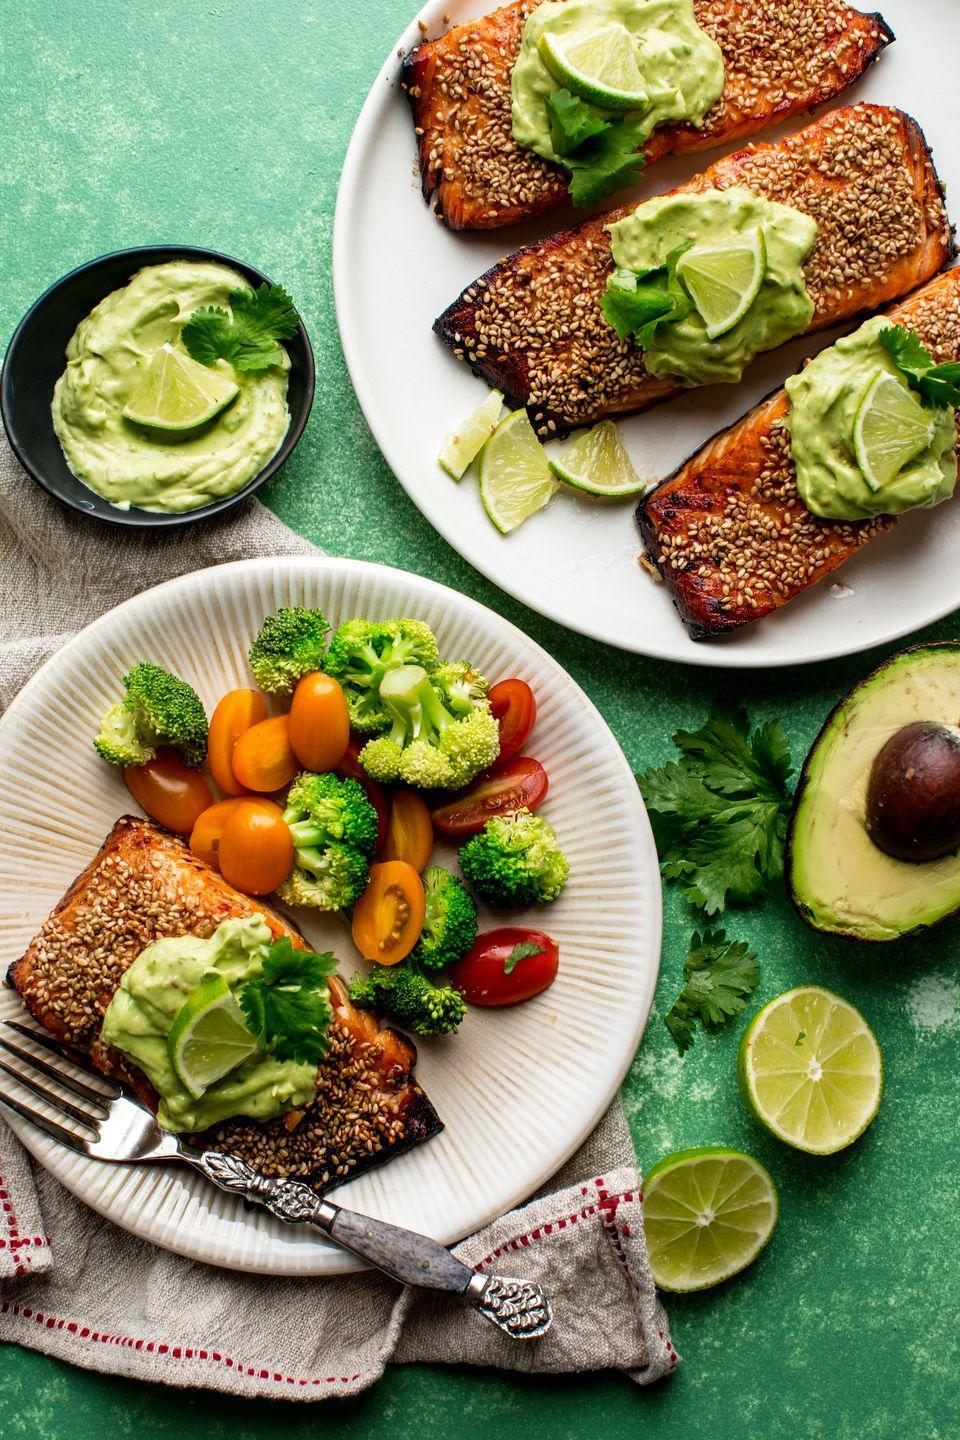 "<p>Spice up your dinner with crisp sesame salmon served with a thick, cool, and creamy avocado lime sauce!</p><p>Get the recipe from <a href=""https://www.delish.com/cooking/recipe-ideas/recipes/a53444/creamy-avocado-lime-salmon-recipe/"" rel=""nofollow noopener"" target=""_blank"" data-ylk=""slk:Delish"" class=""link rapid-noclick-resp"">Delish</a>.</p>"